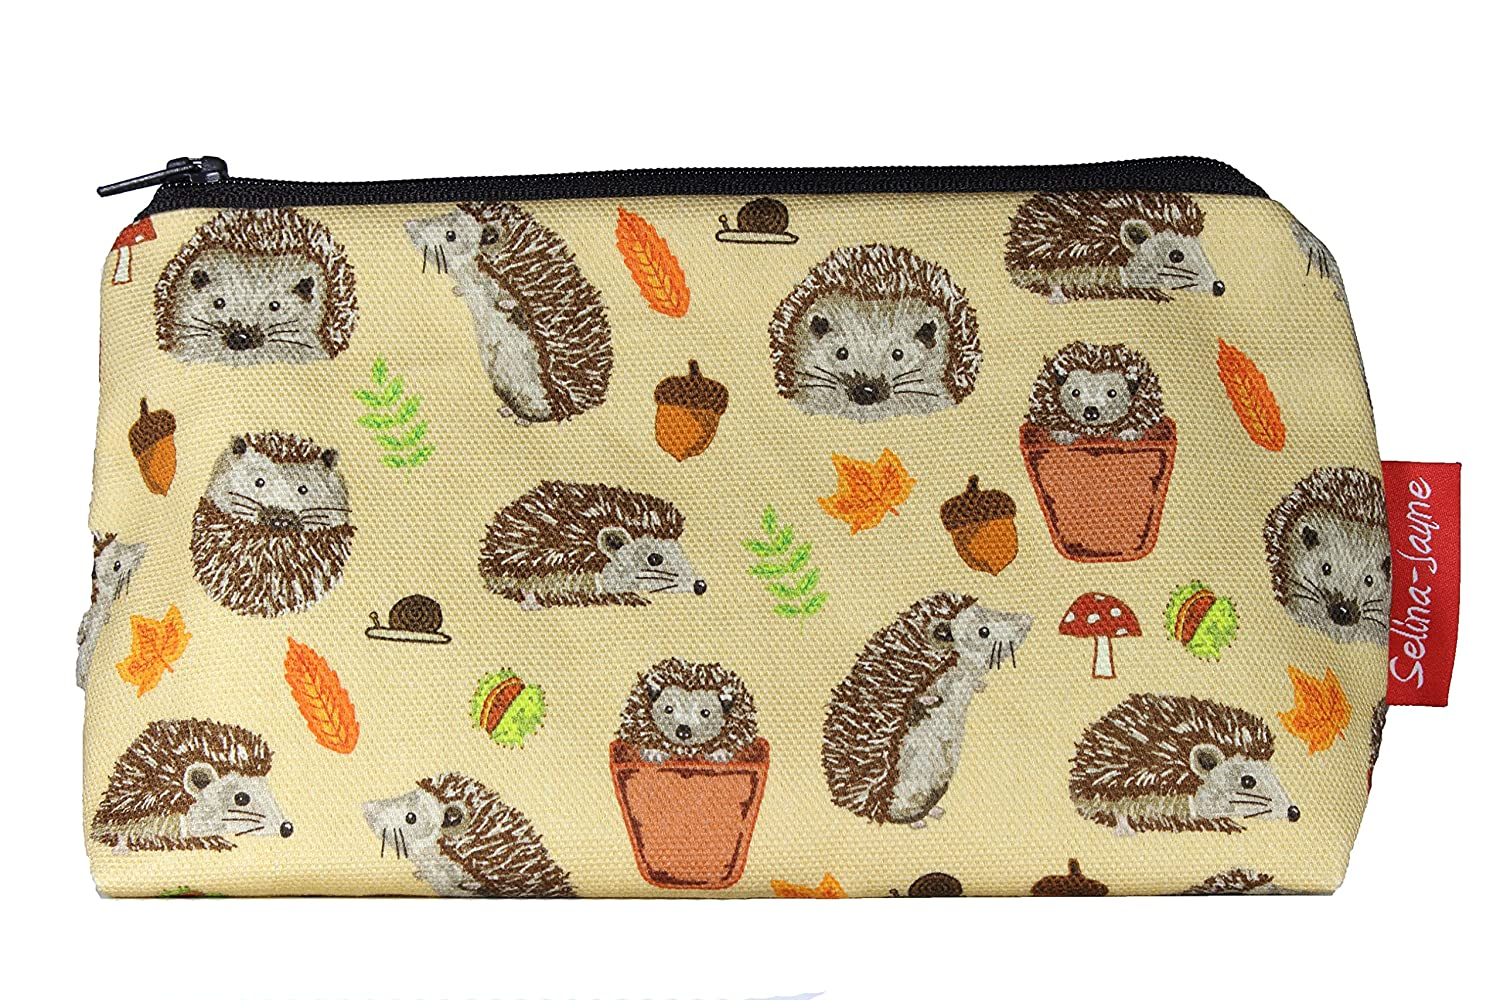 decdbd630a81 Hedgehogs selina-jayne Limited B01FRG7C84 Bag Toiletry Designer ...